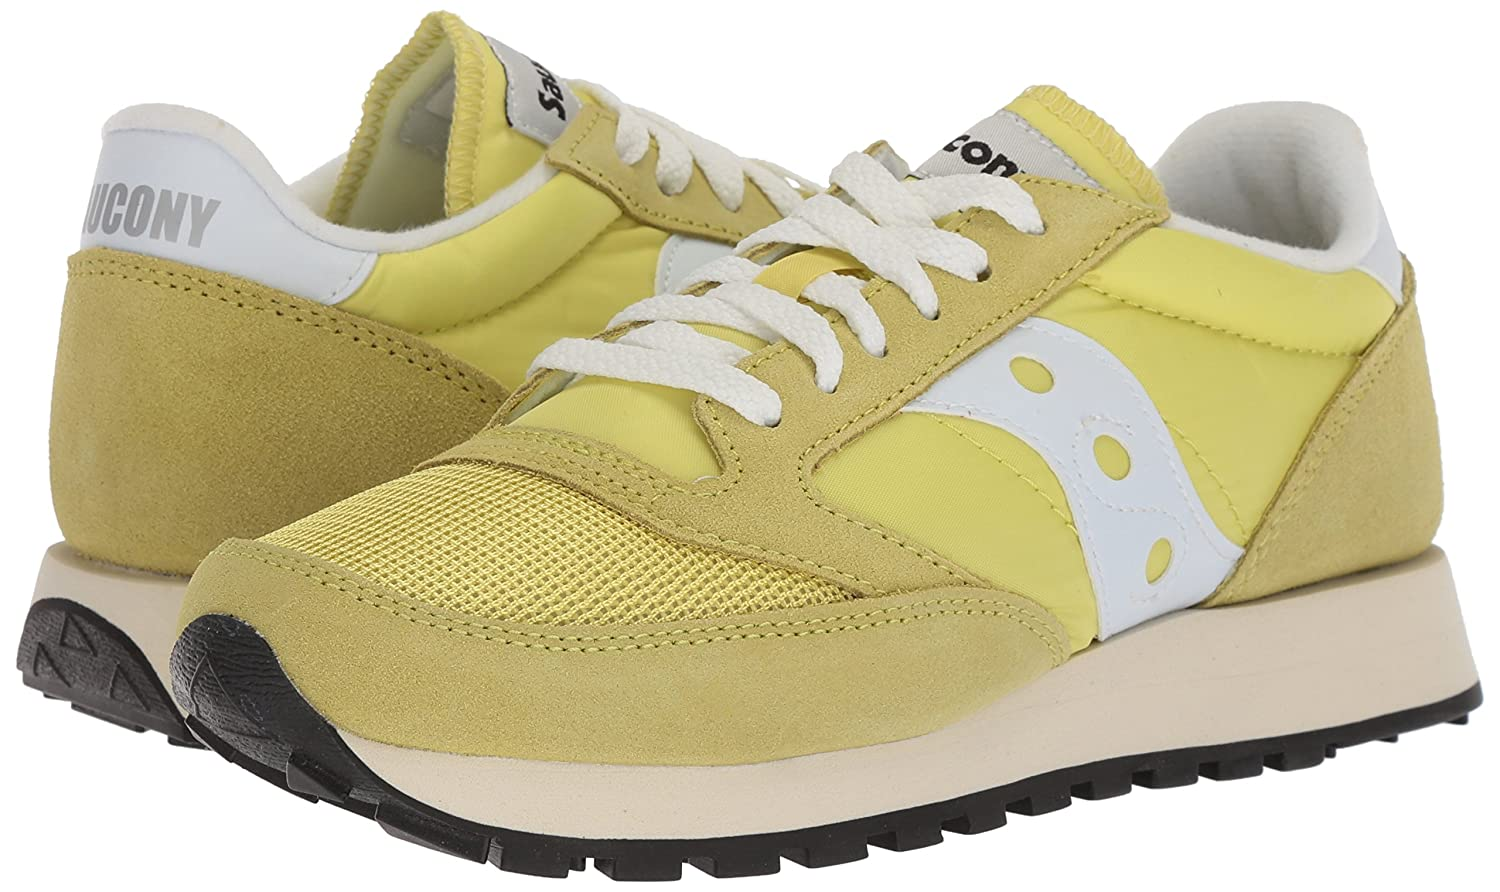 Saucony Originals Women's Jazz Vintage B(M) Running Shoe B071X5FVCW 8.5 B(M) Vintage US|Yellow/White 5e4944